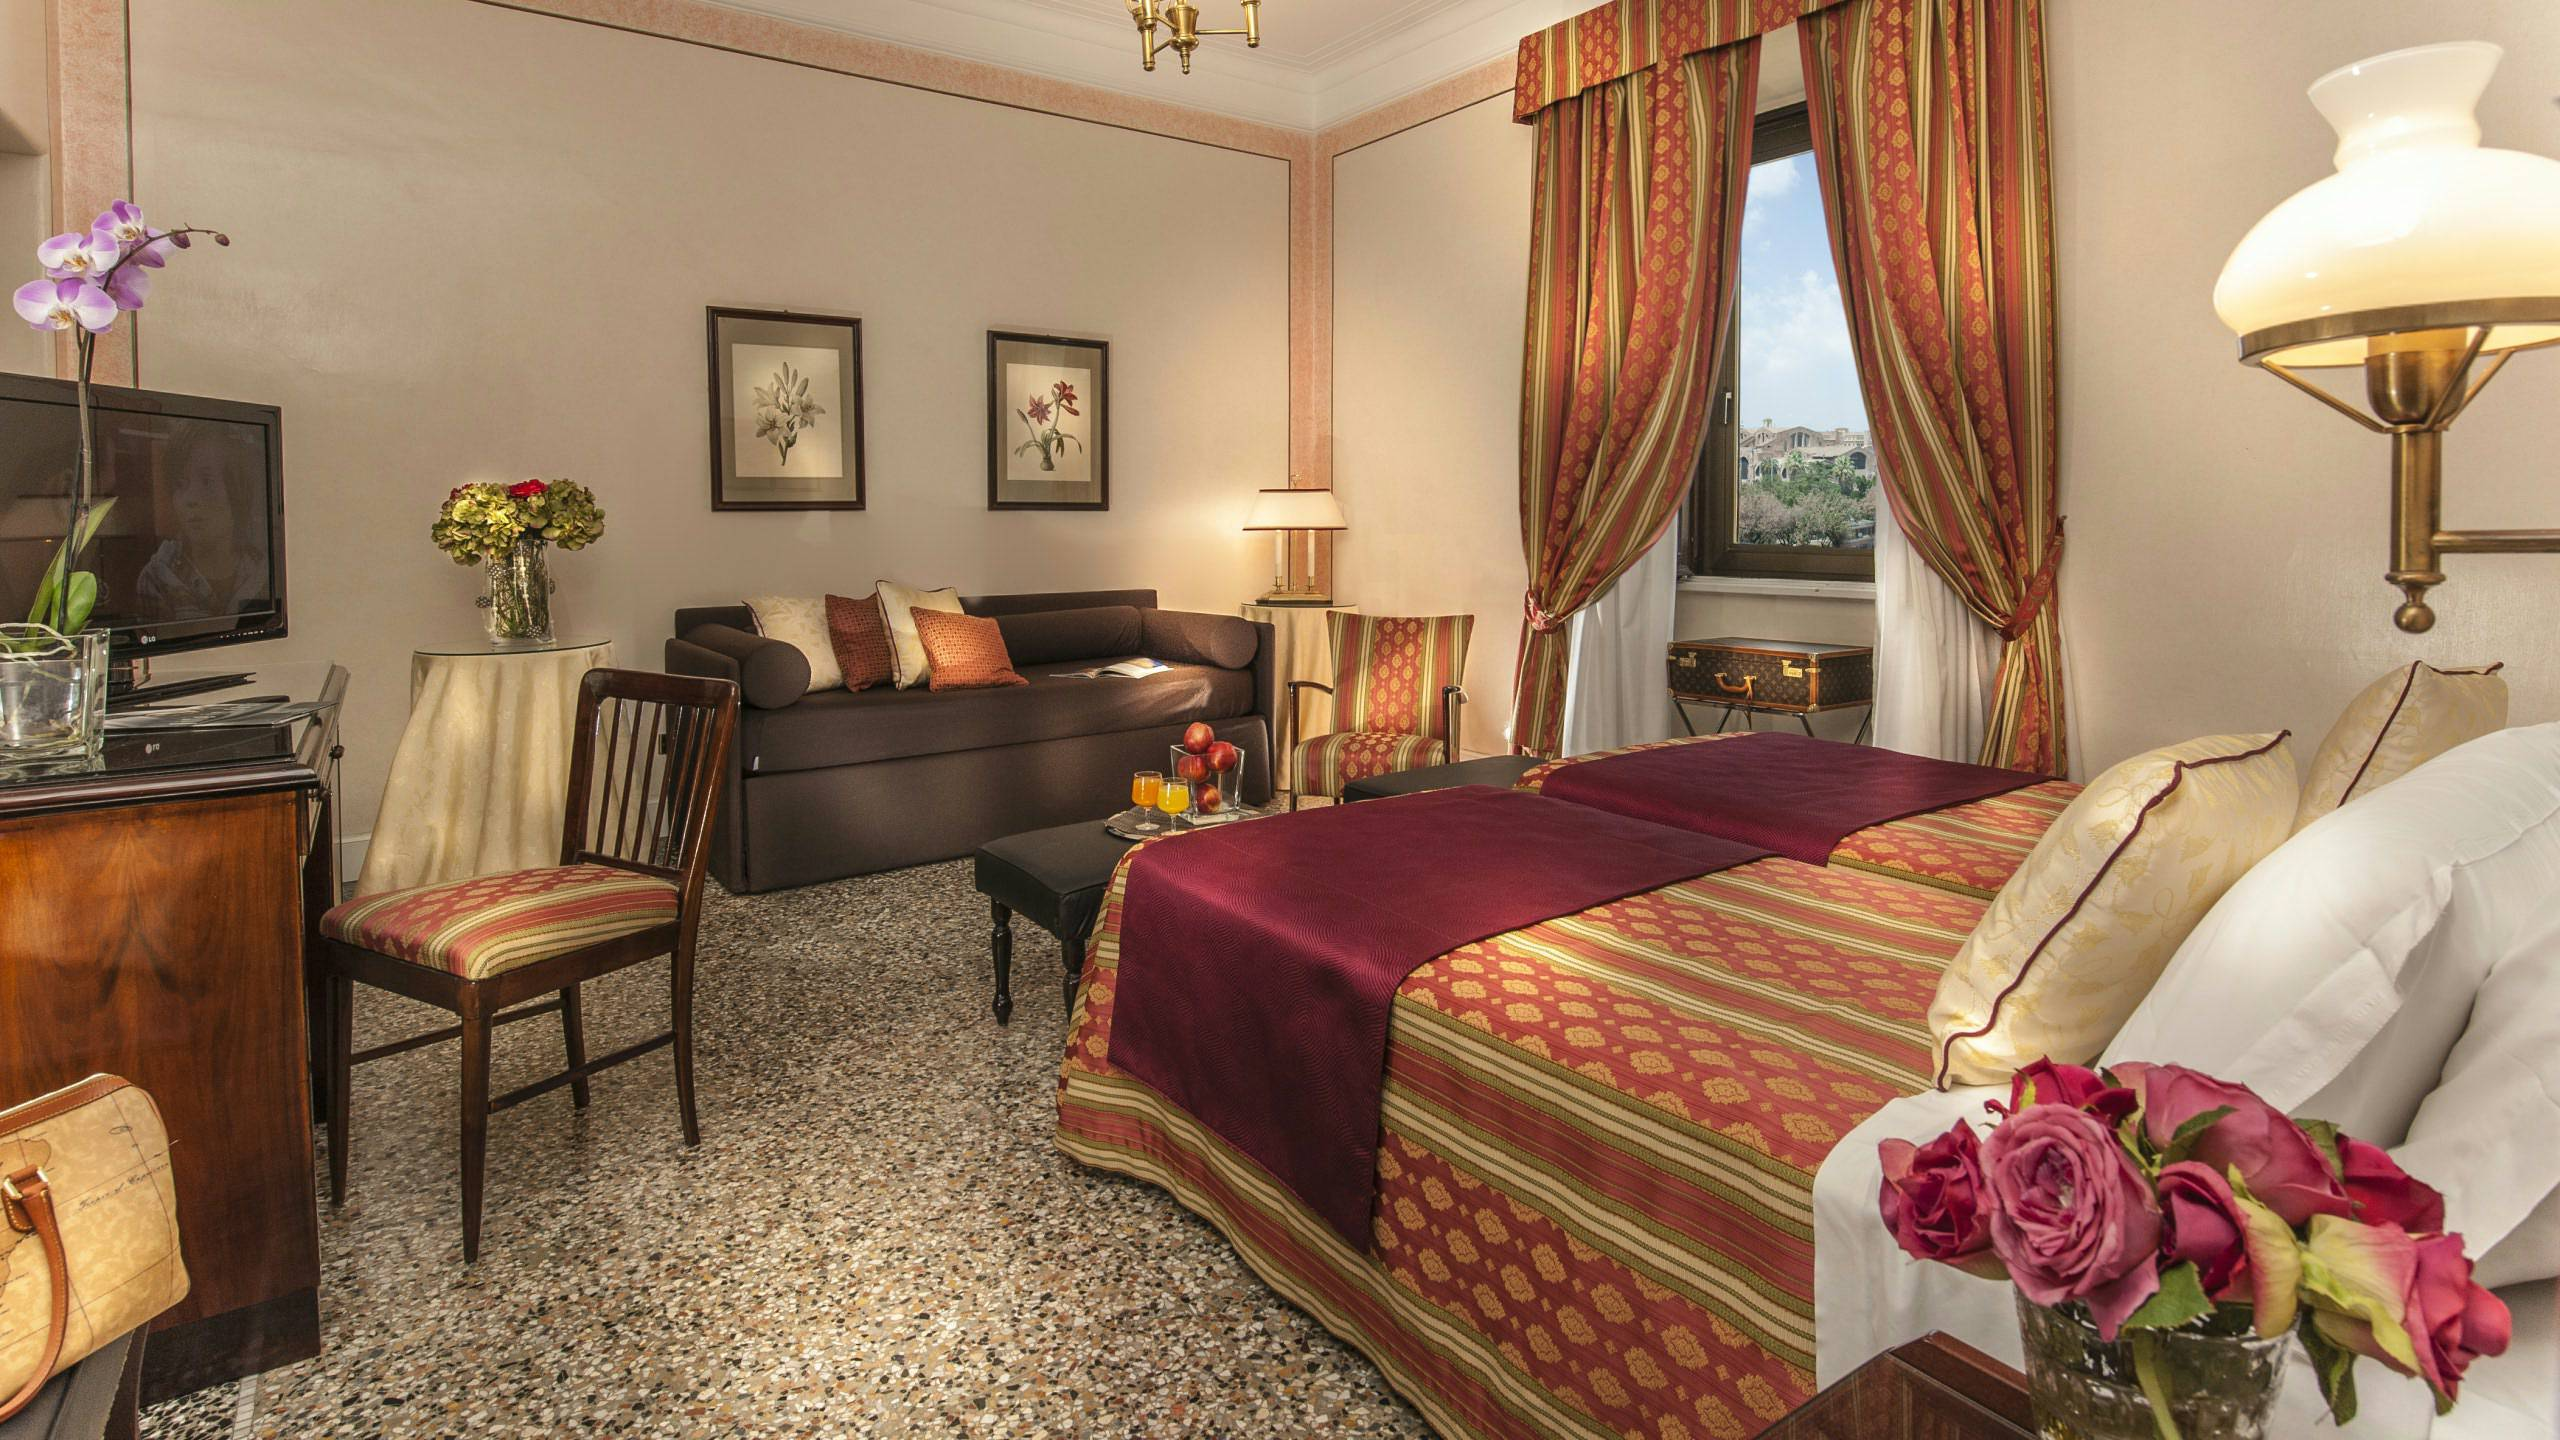 Hotel-Nord-Nuova-Roma-rooms-21